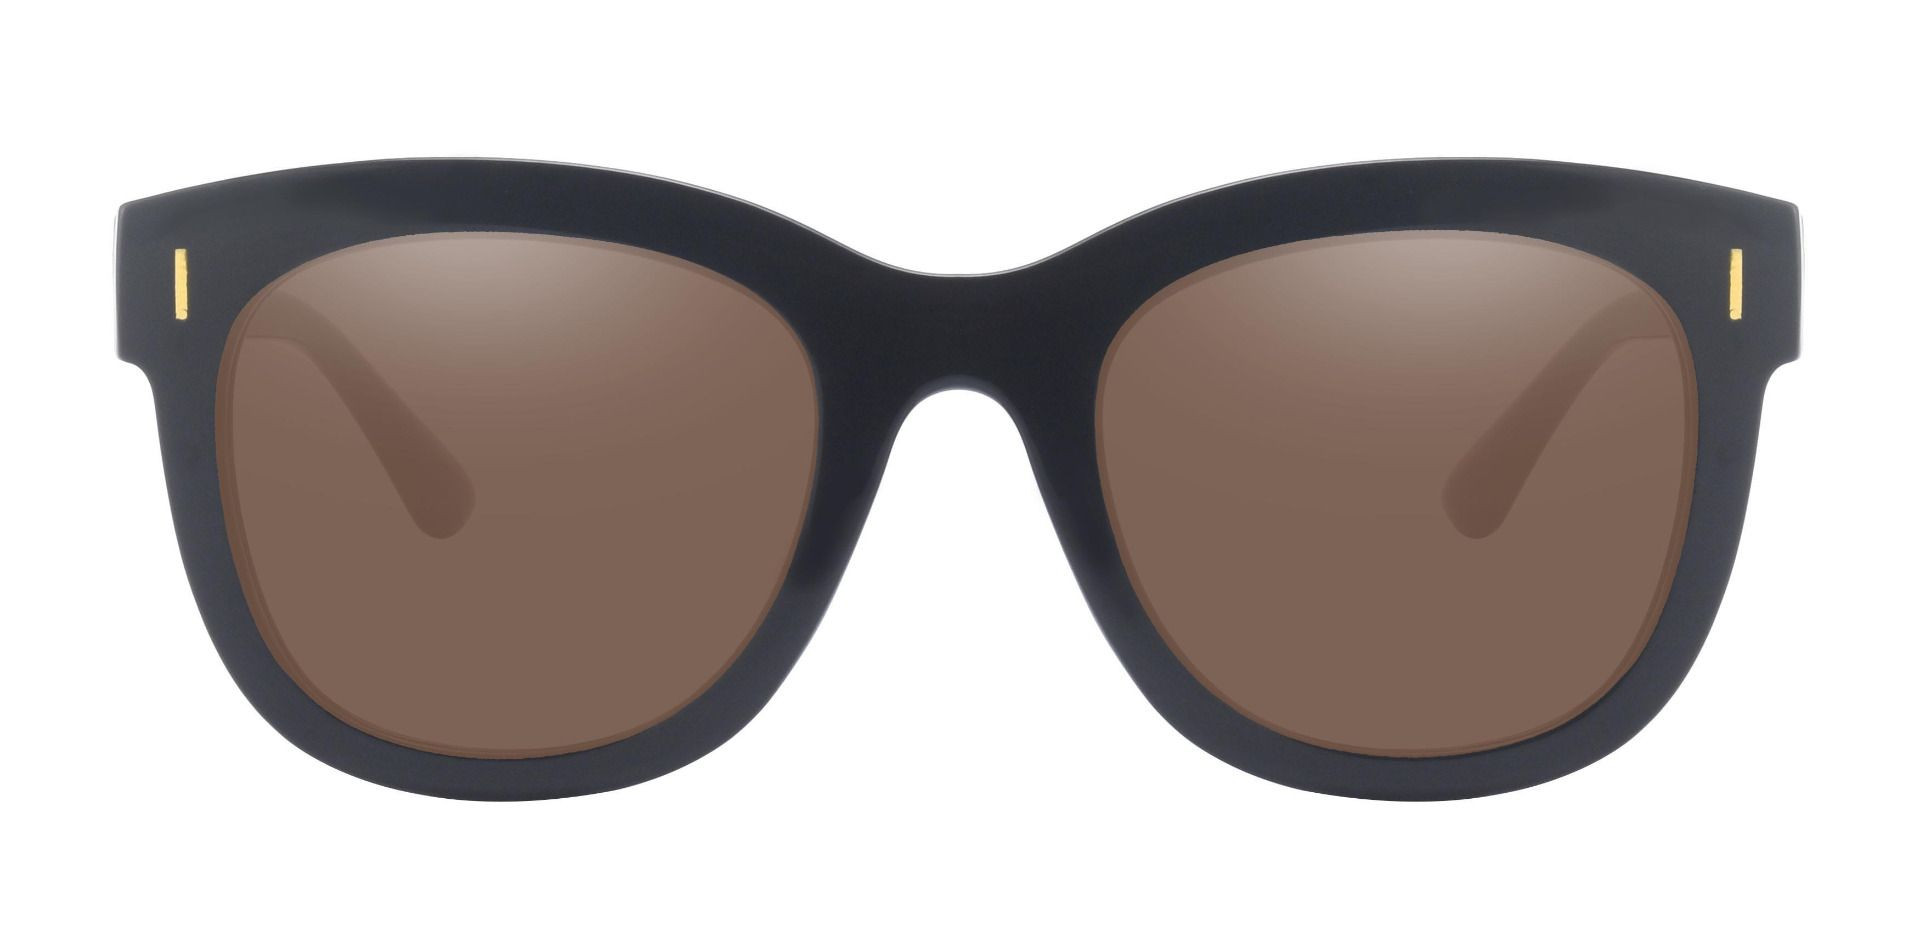 Saratoga Square Lined Bifocal Sunglasses - Black Frame With Brown Lenses